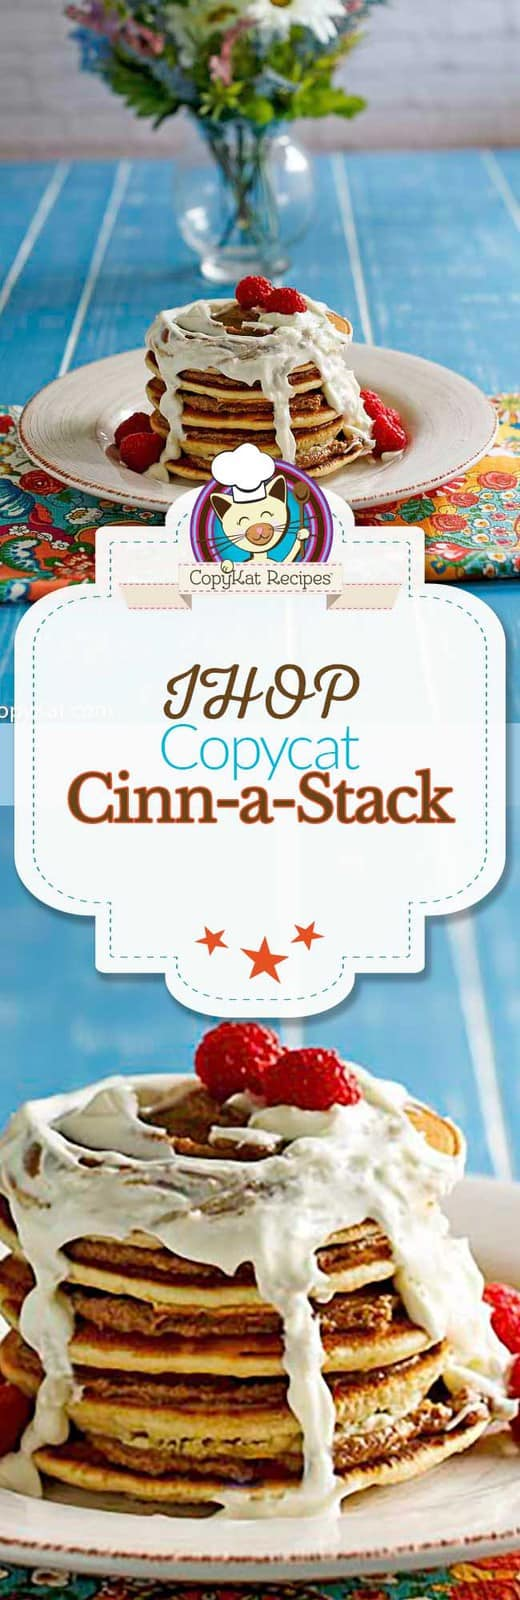 You can recreate the IHOP Cinn-a-Stack Pancakes at home with this copycat recipe.